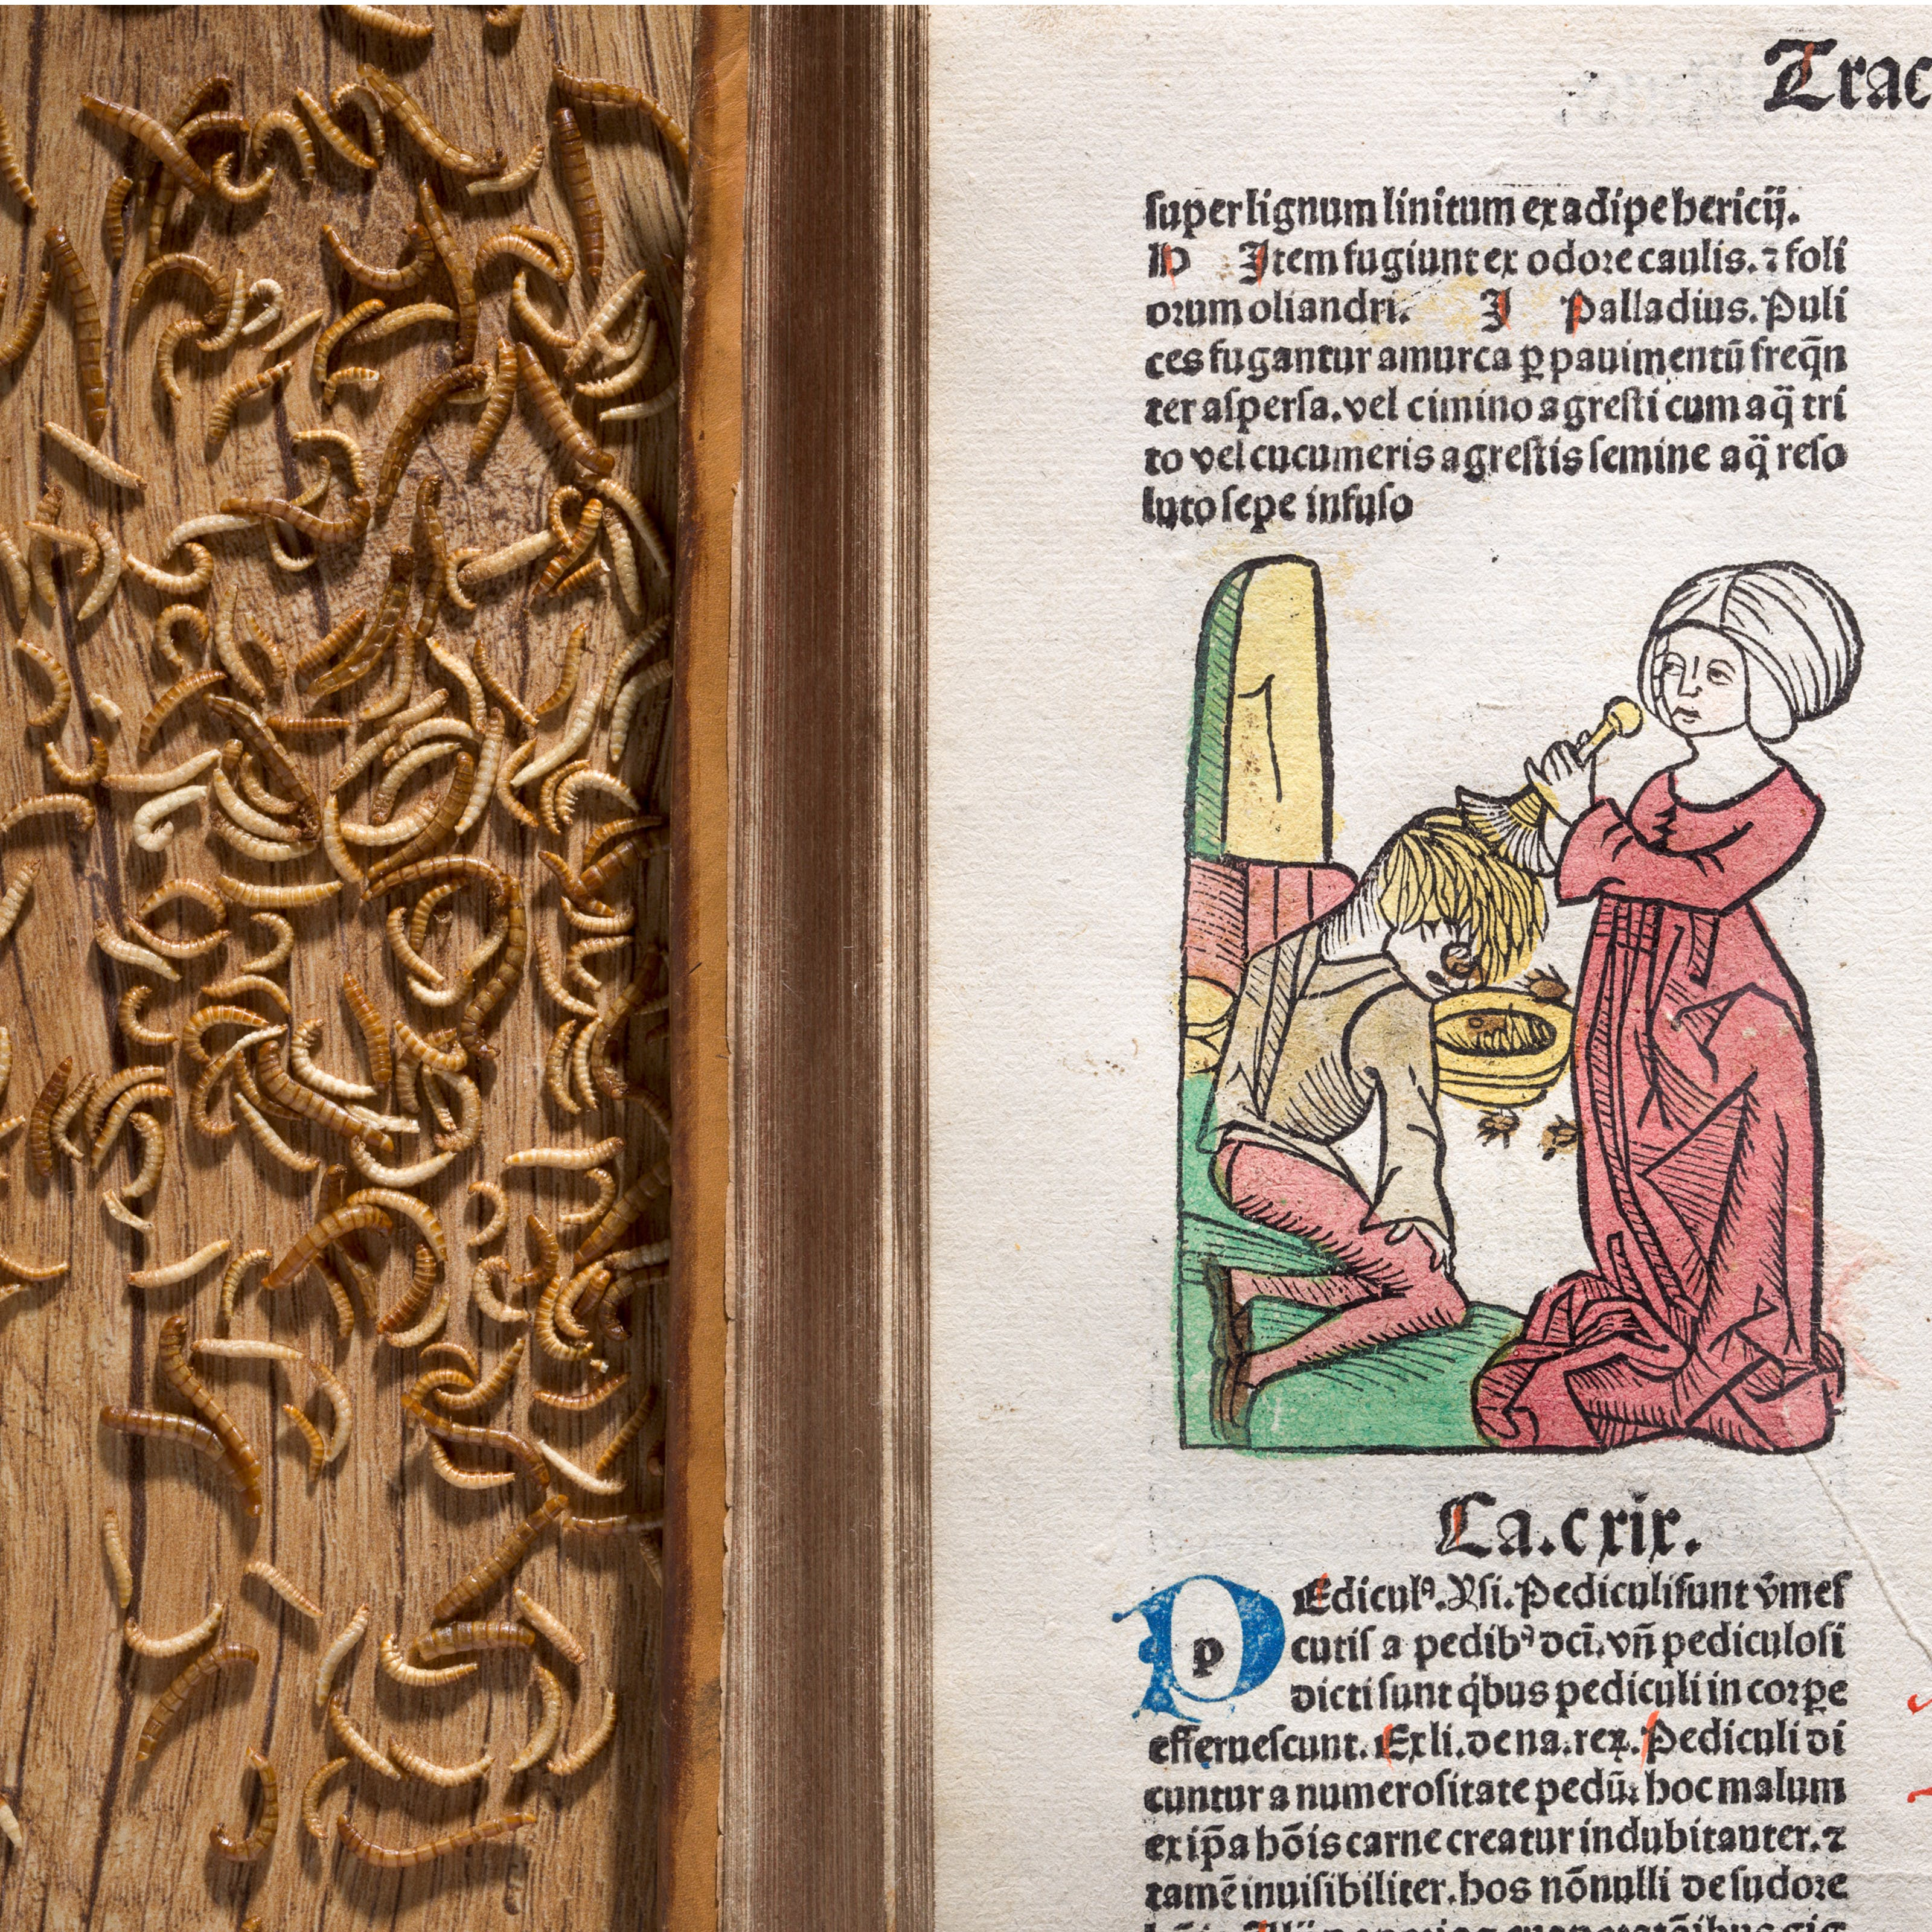 Photograph of an illustration in an early printed book from the 15th century of a woman removing head lice from a young boy. behind the book on a wooden table top there is a gathering of worms.